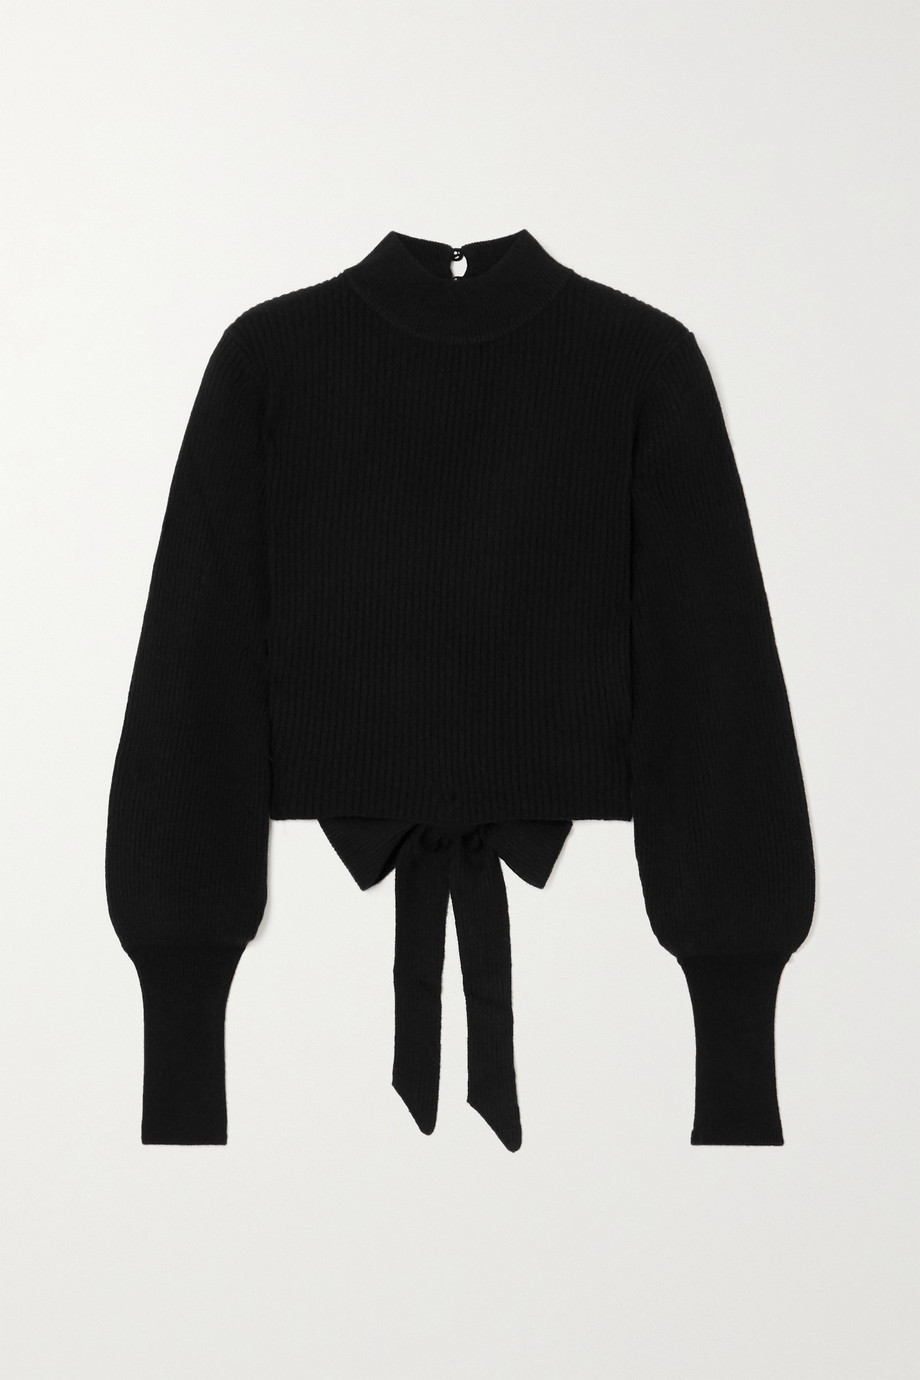 Reformation Osteria open-back ribbed cashmere sweater